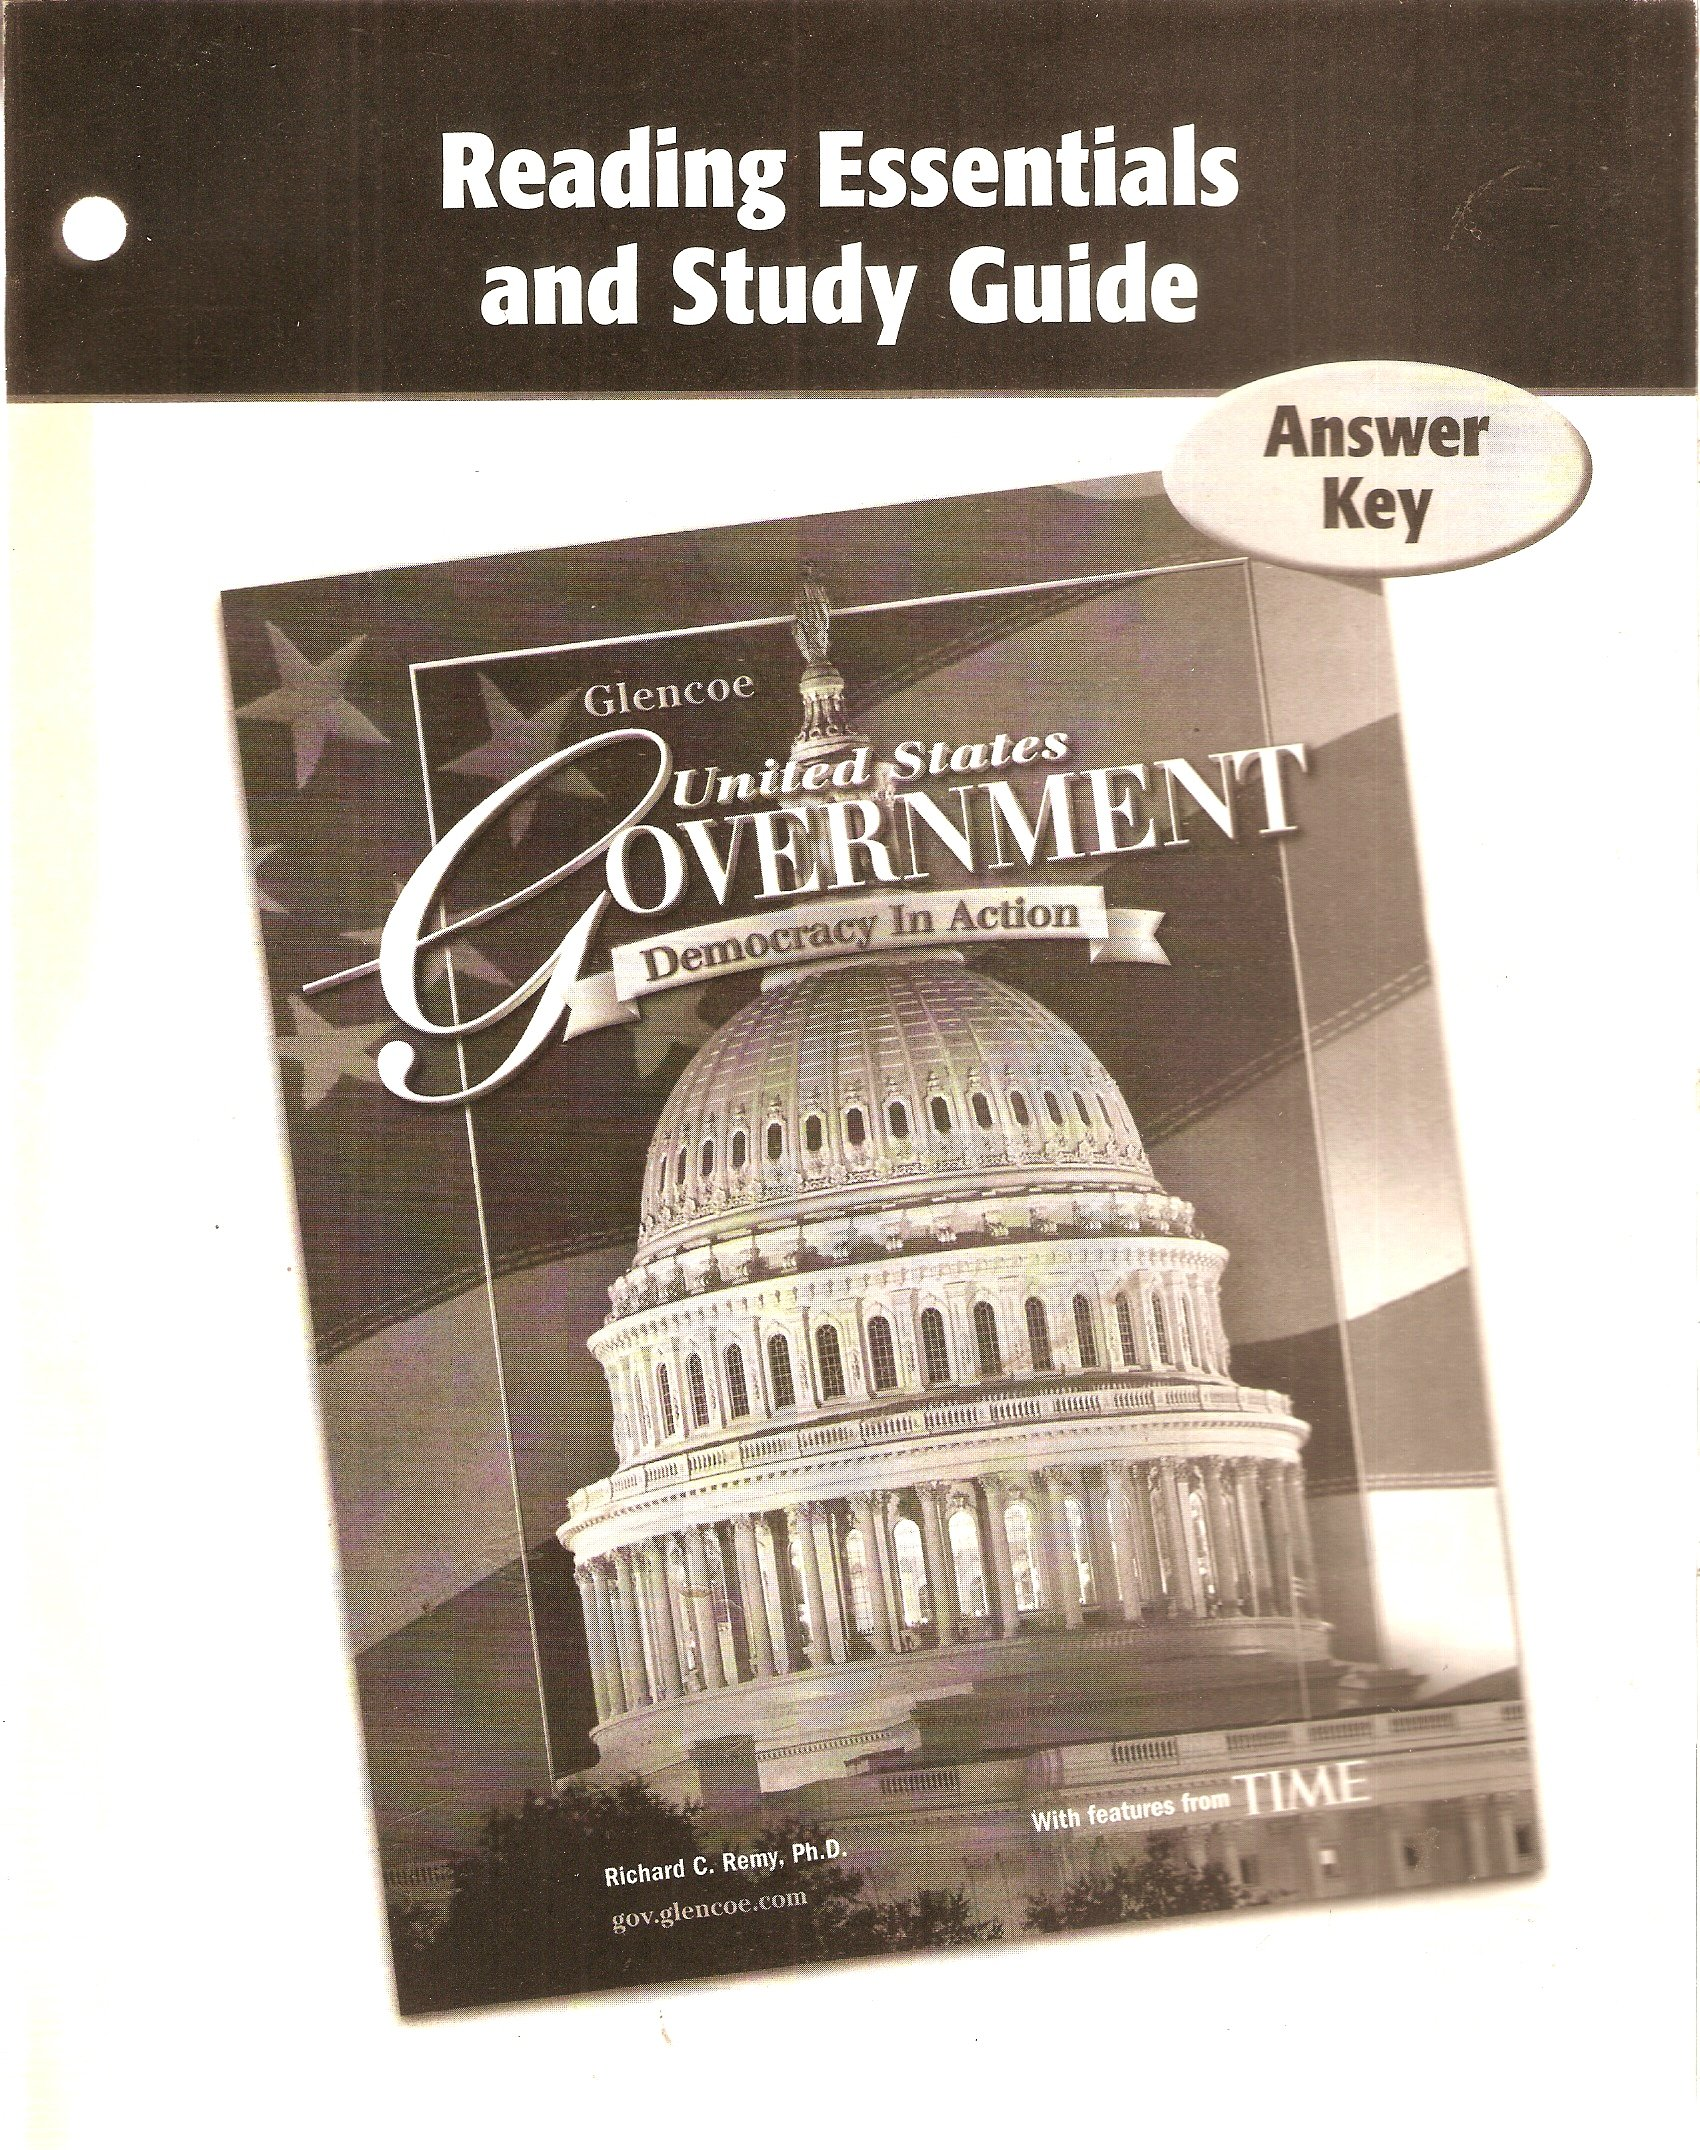 Answer Key for Reading Essentials & Study Guide: Glencoe United States  Government Democracy in Action: Glencoe/McGraw-Hill/R.Remy: Amazon.com:  Books